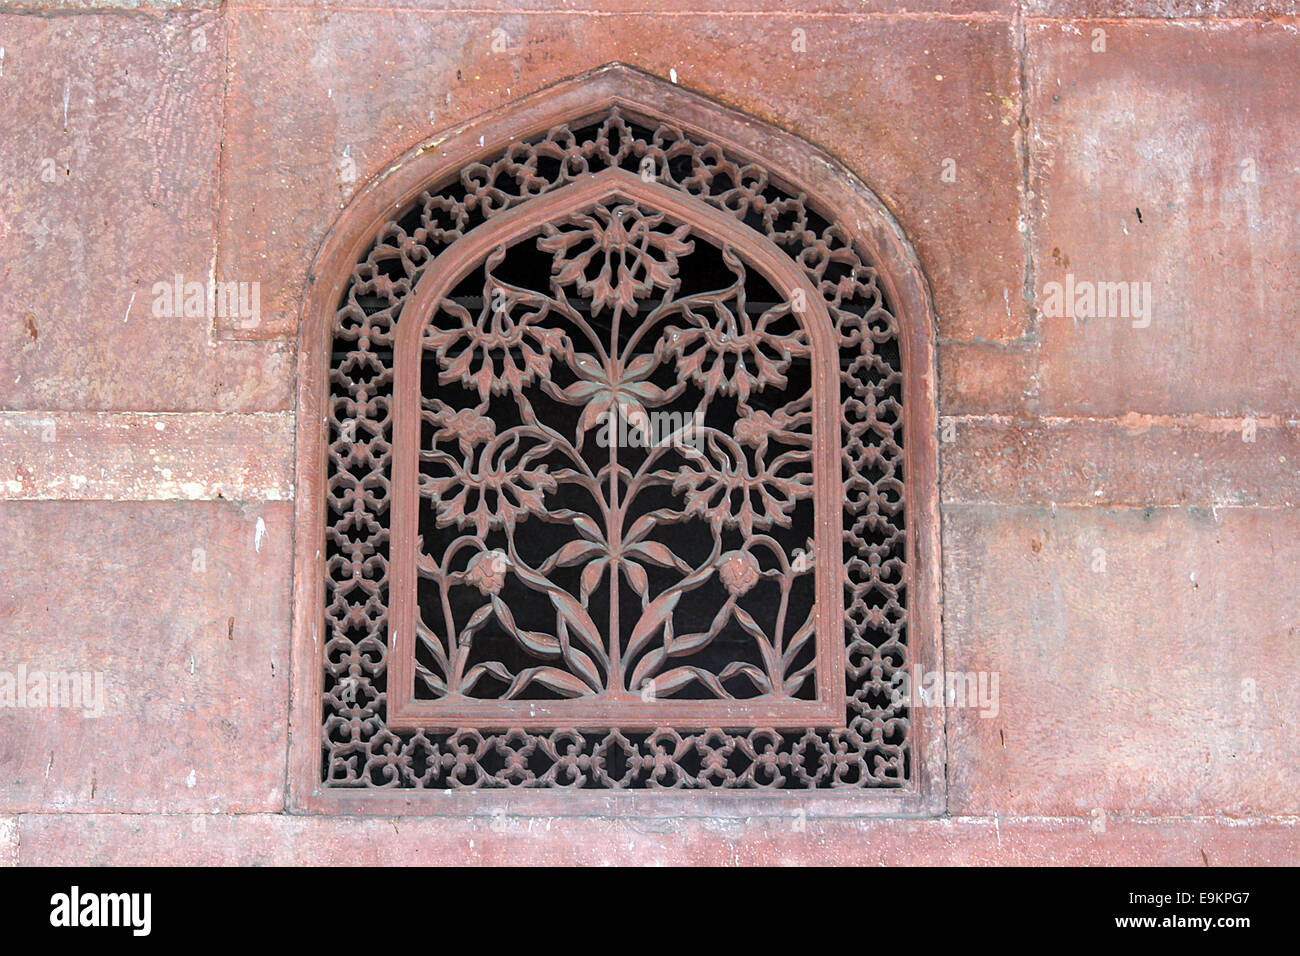 1656, 1800, 1803, 19th, 2d, academic, ad, after, age, ancient, antique, antiquity, asia, b, before, best-known, - Stock Image